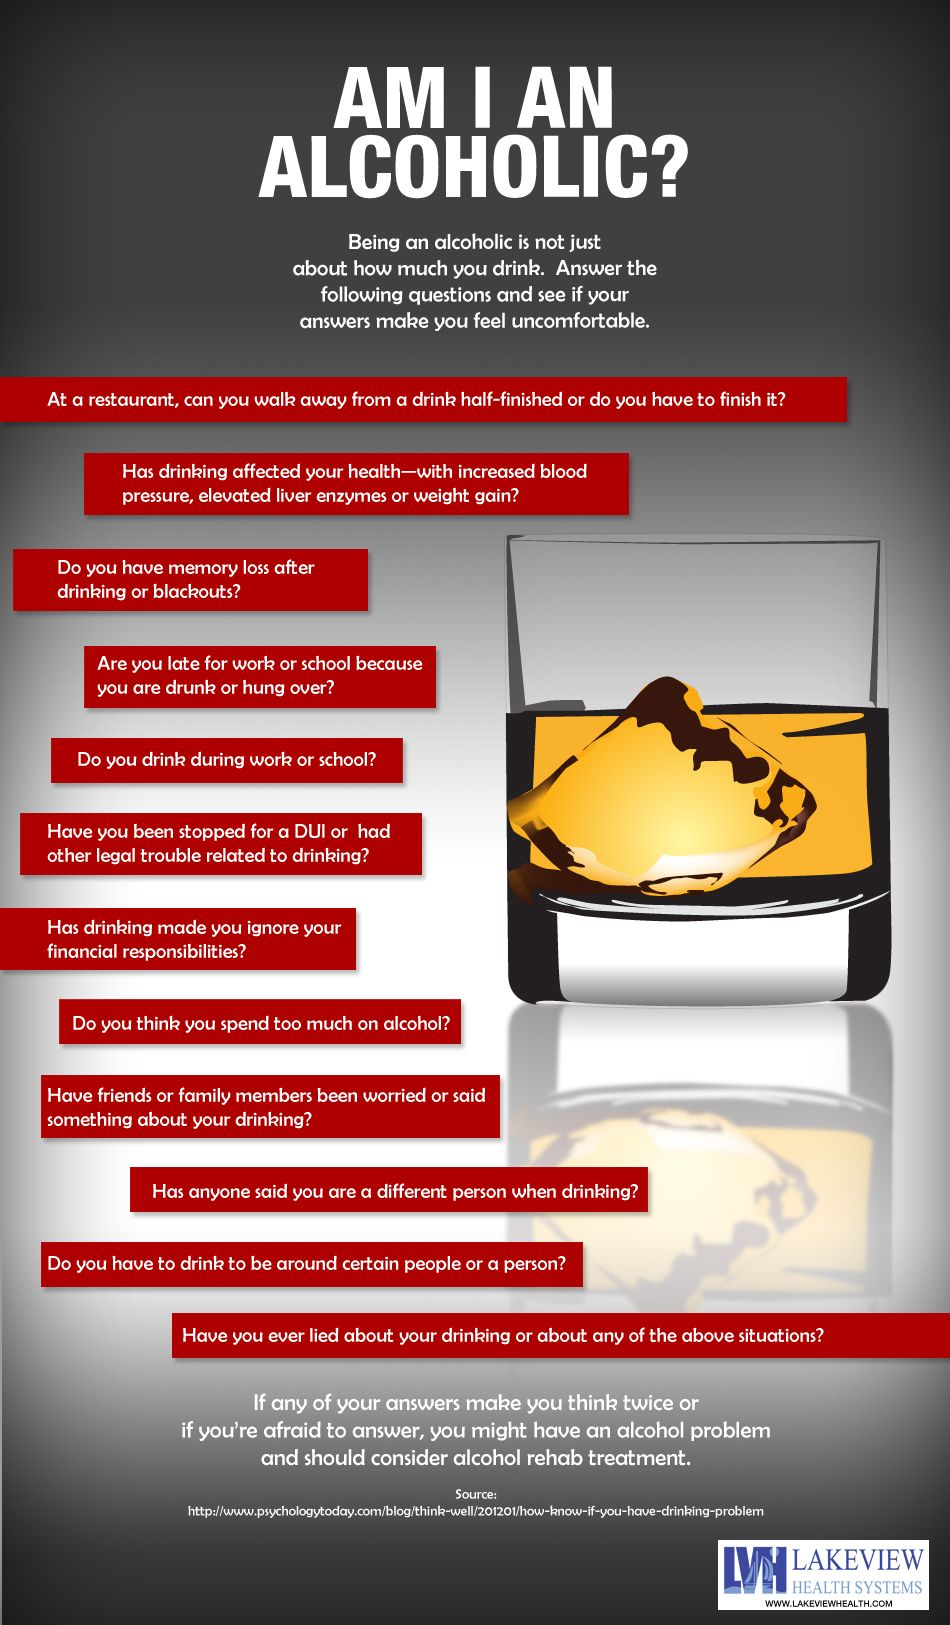 Are you an alcoholic? Answer these questions to see if you need help. #alcoholic #infographic